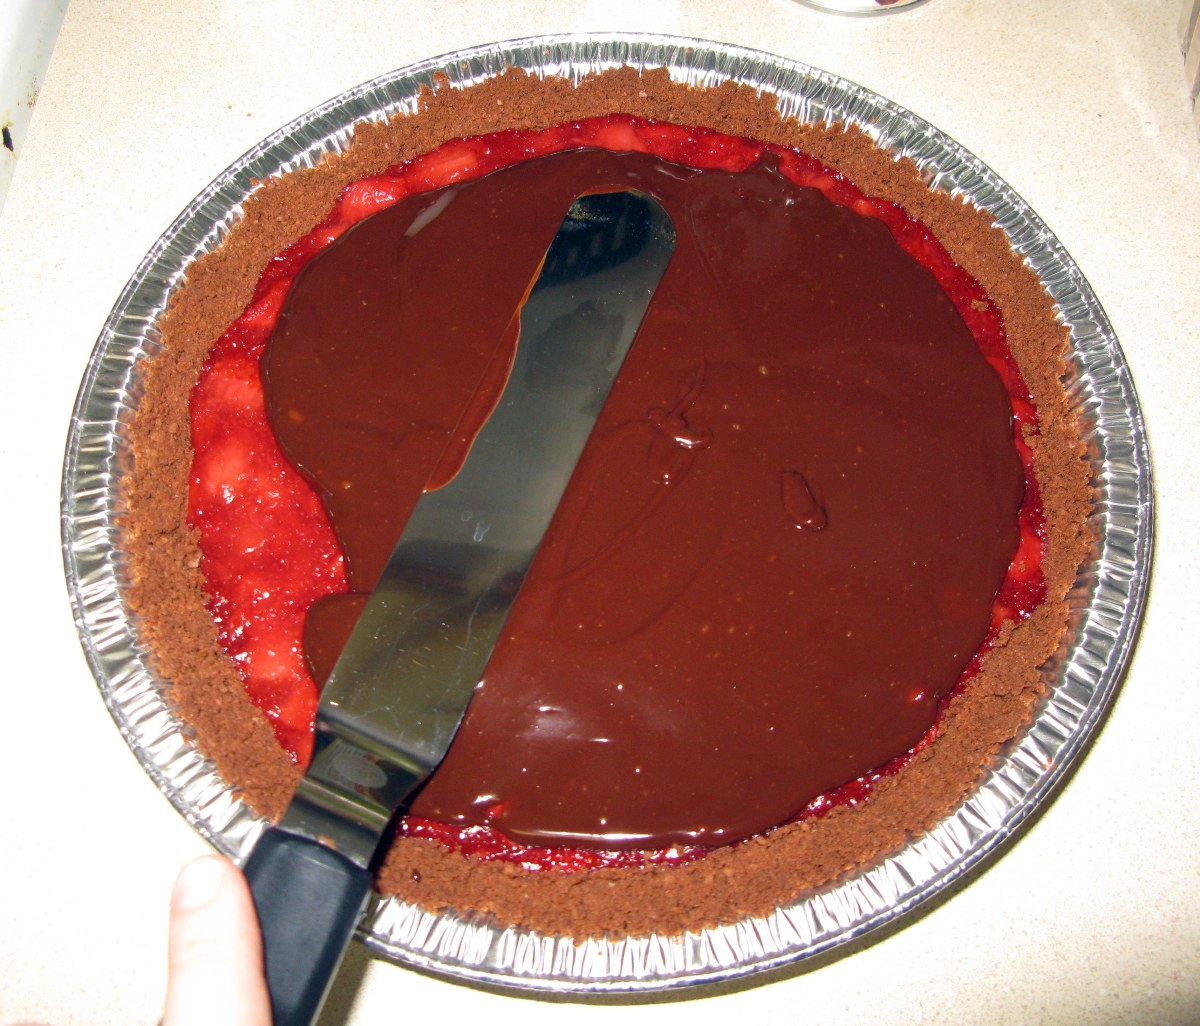 Spreading Ganache on Pie